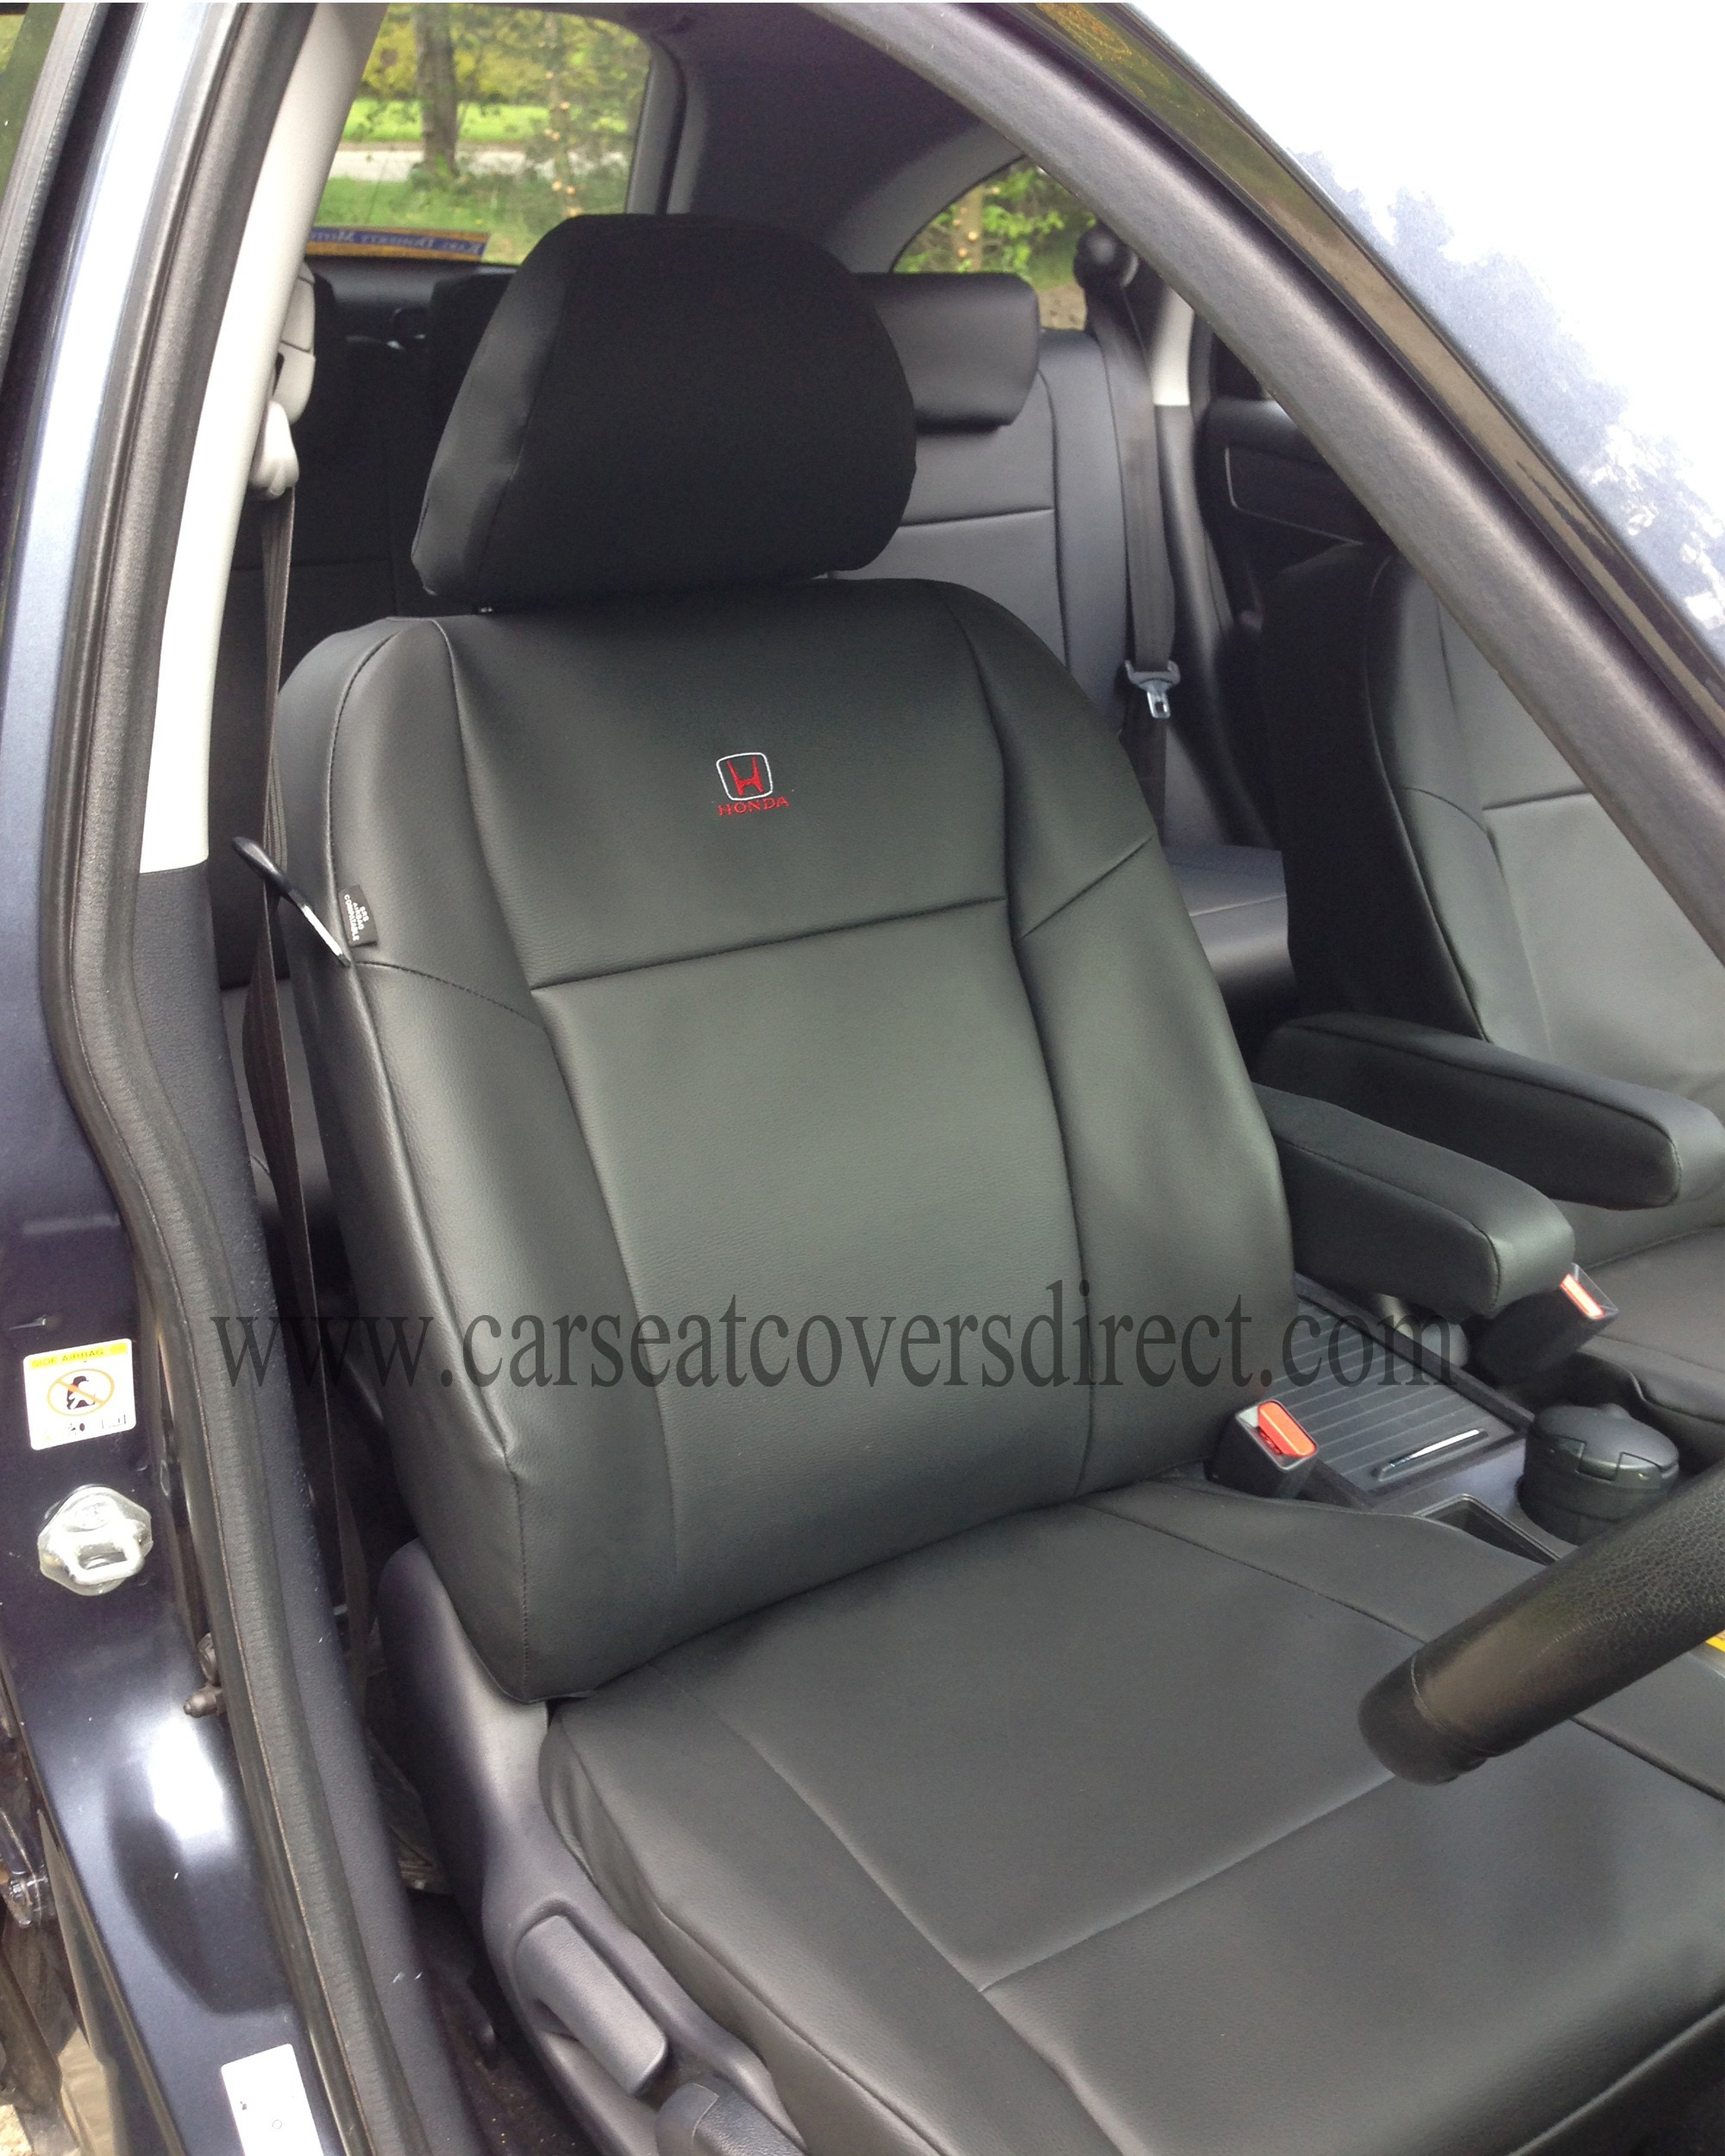 honda crv 3rd gen seat covers car seat covers direct tailored to your choice. Black Bedroom Furniture Sets. Home Design Ideas